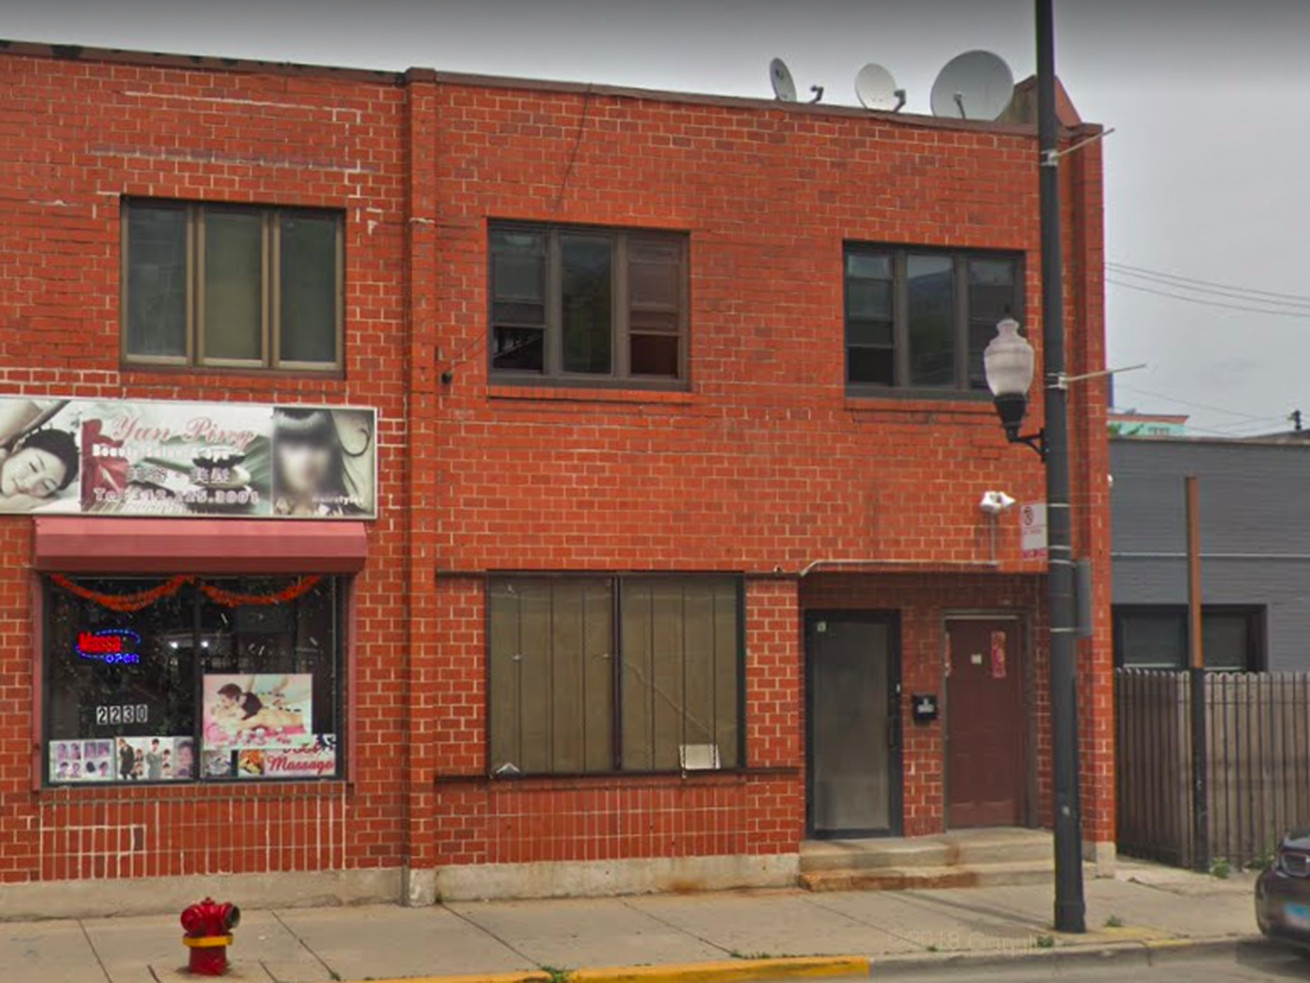 Xing Ying, one of the employment agencies, reportedly operates out of 2228 S. Archer Avenue